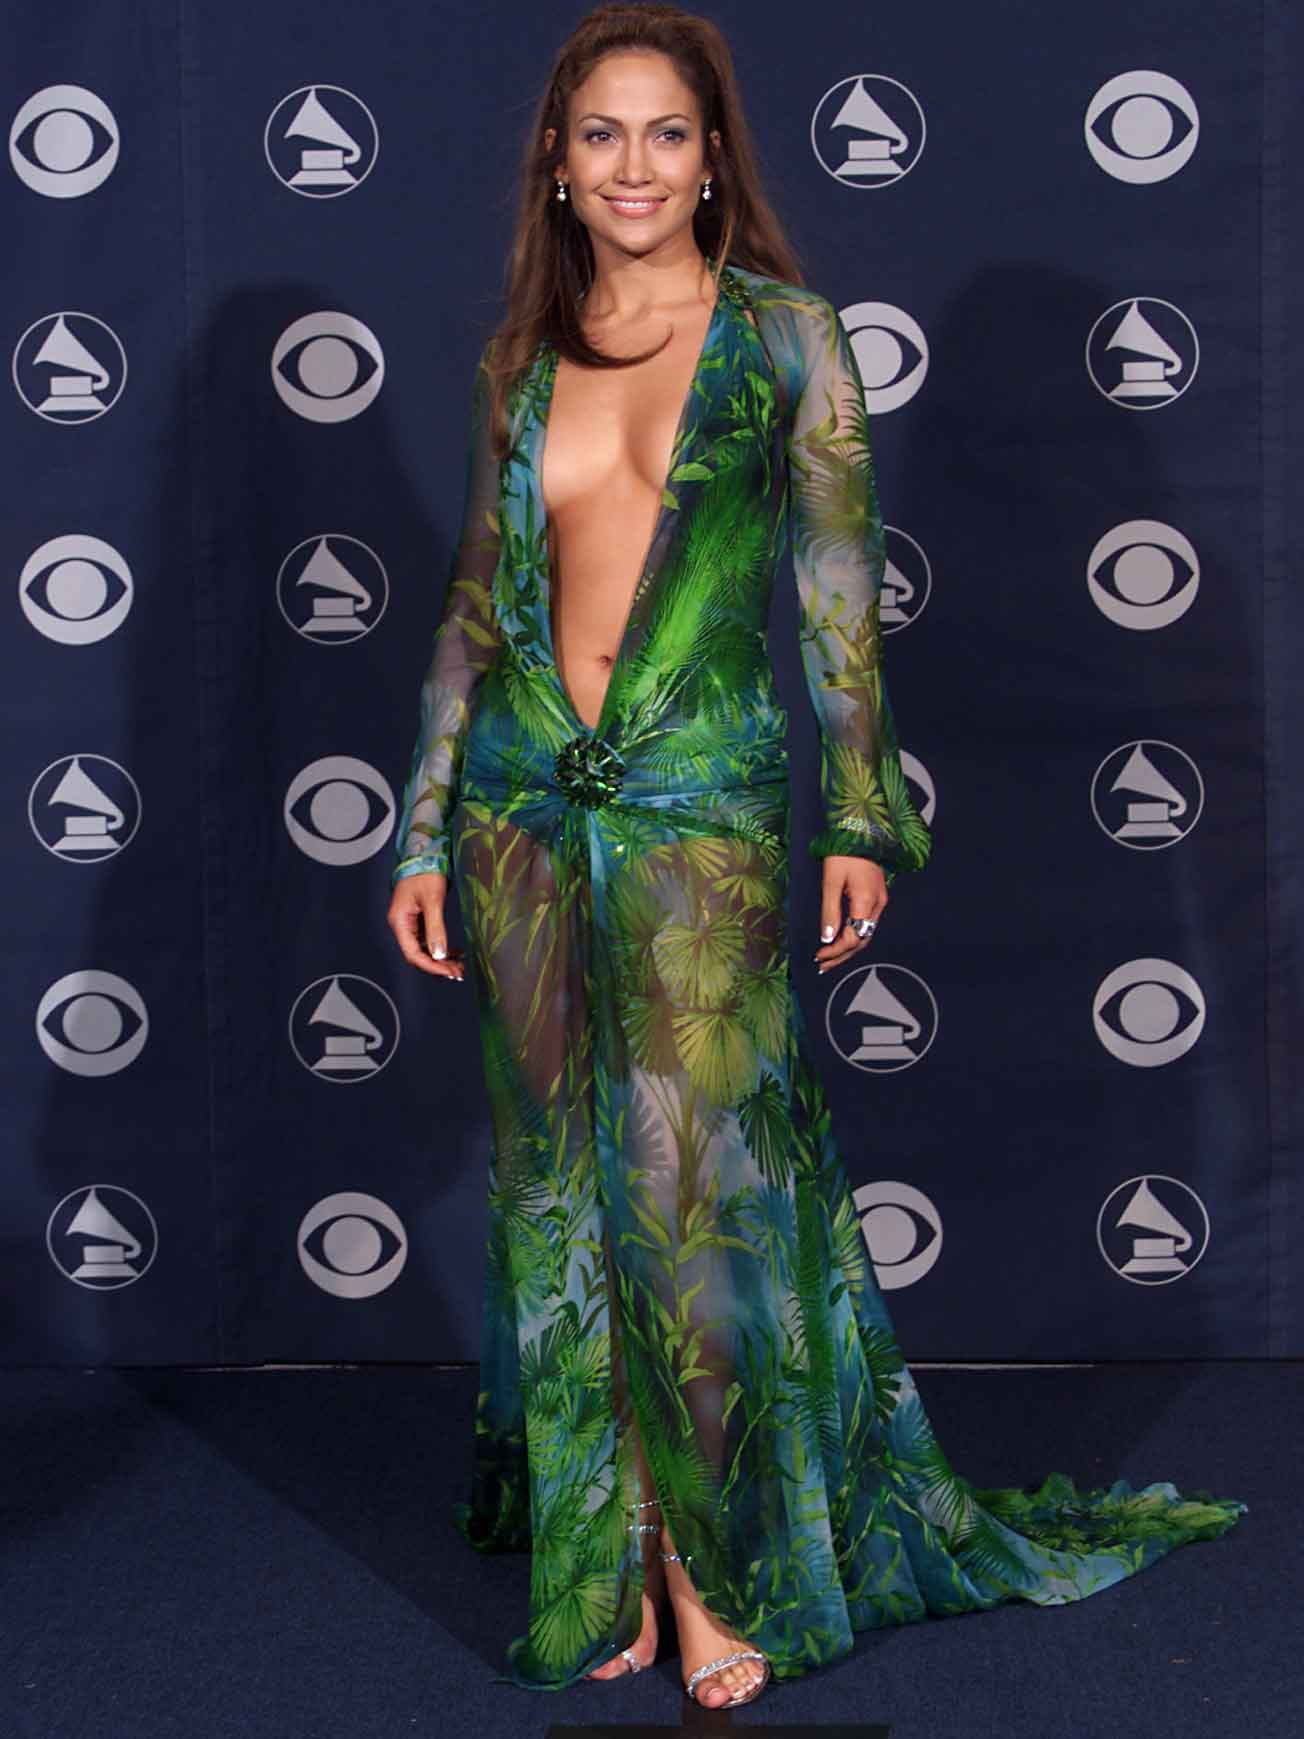 Jennifer Lopez's green Versace dress led to the creation of Google ...